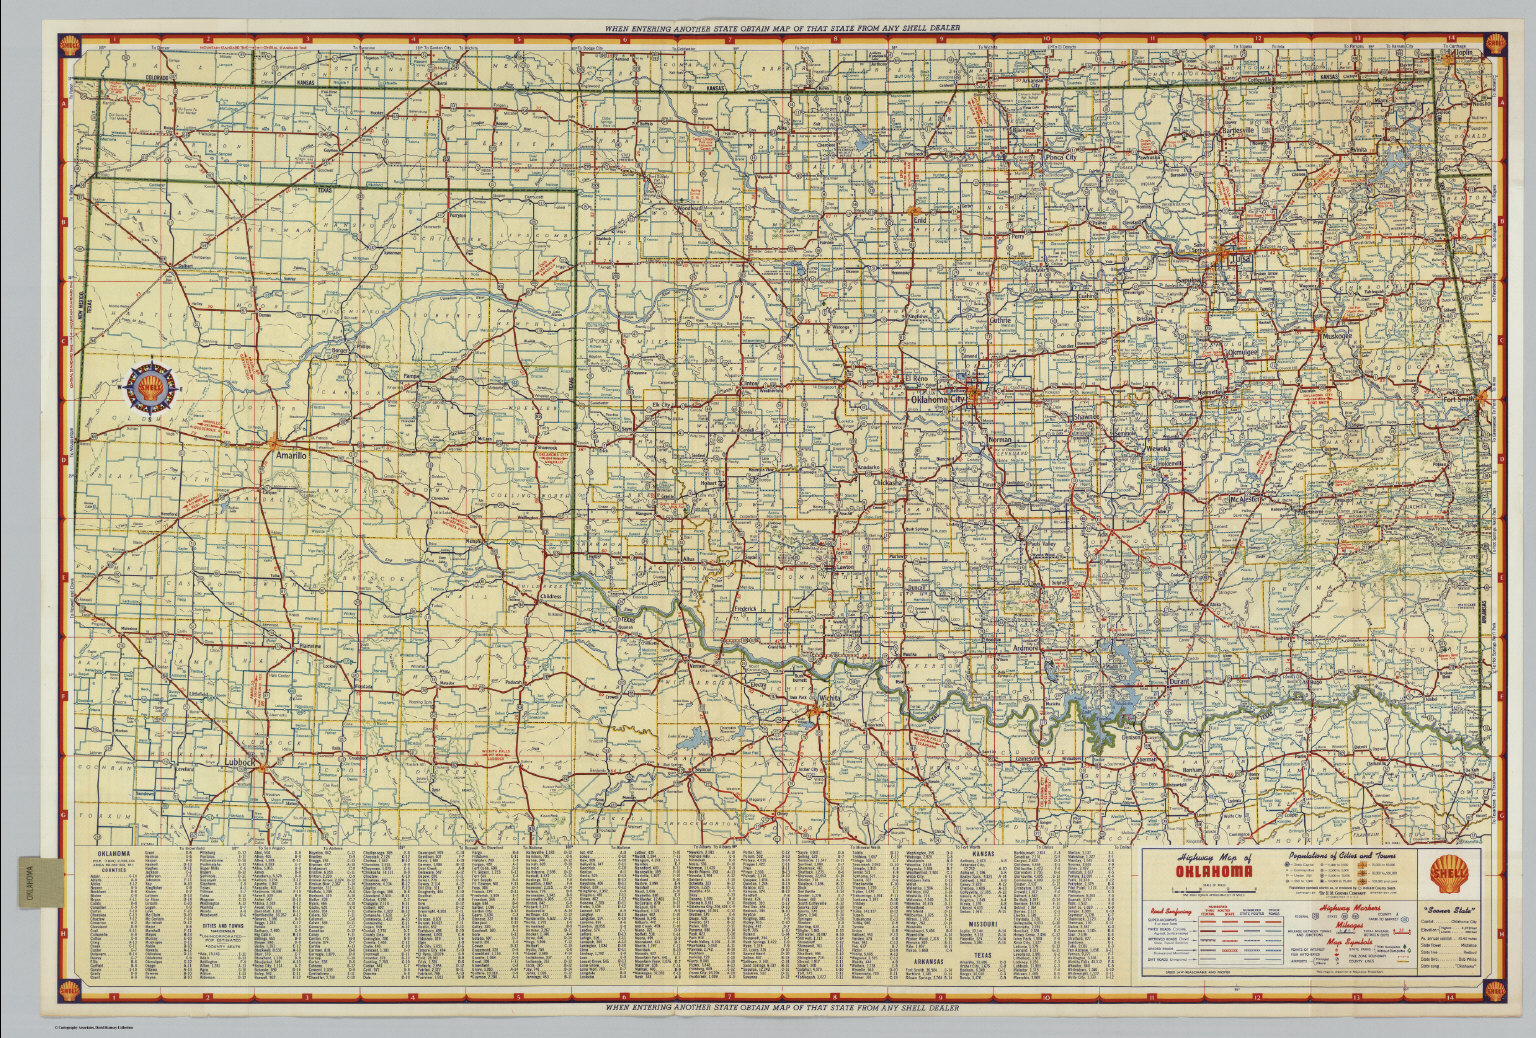 Shell Highway Map Of Oklahoma David Rumsey Historical Map - Oklahoma highways map